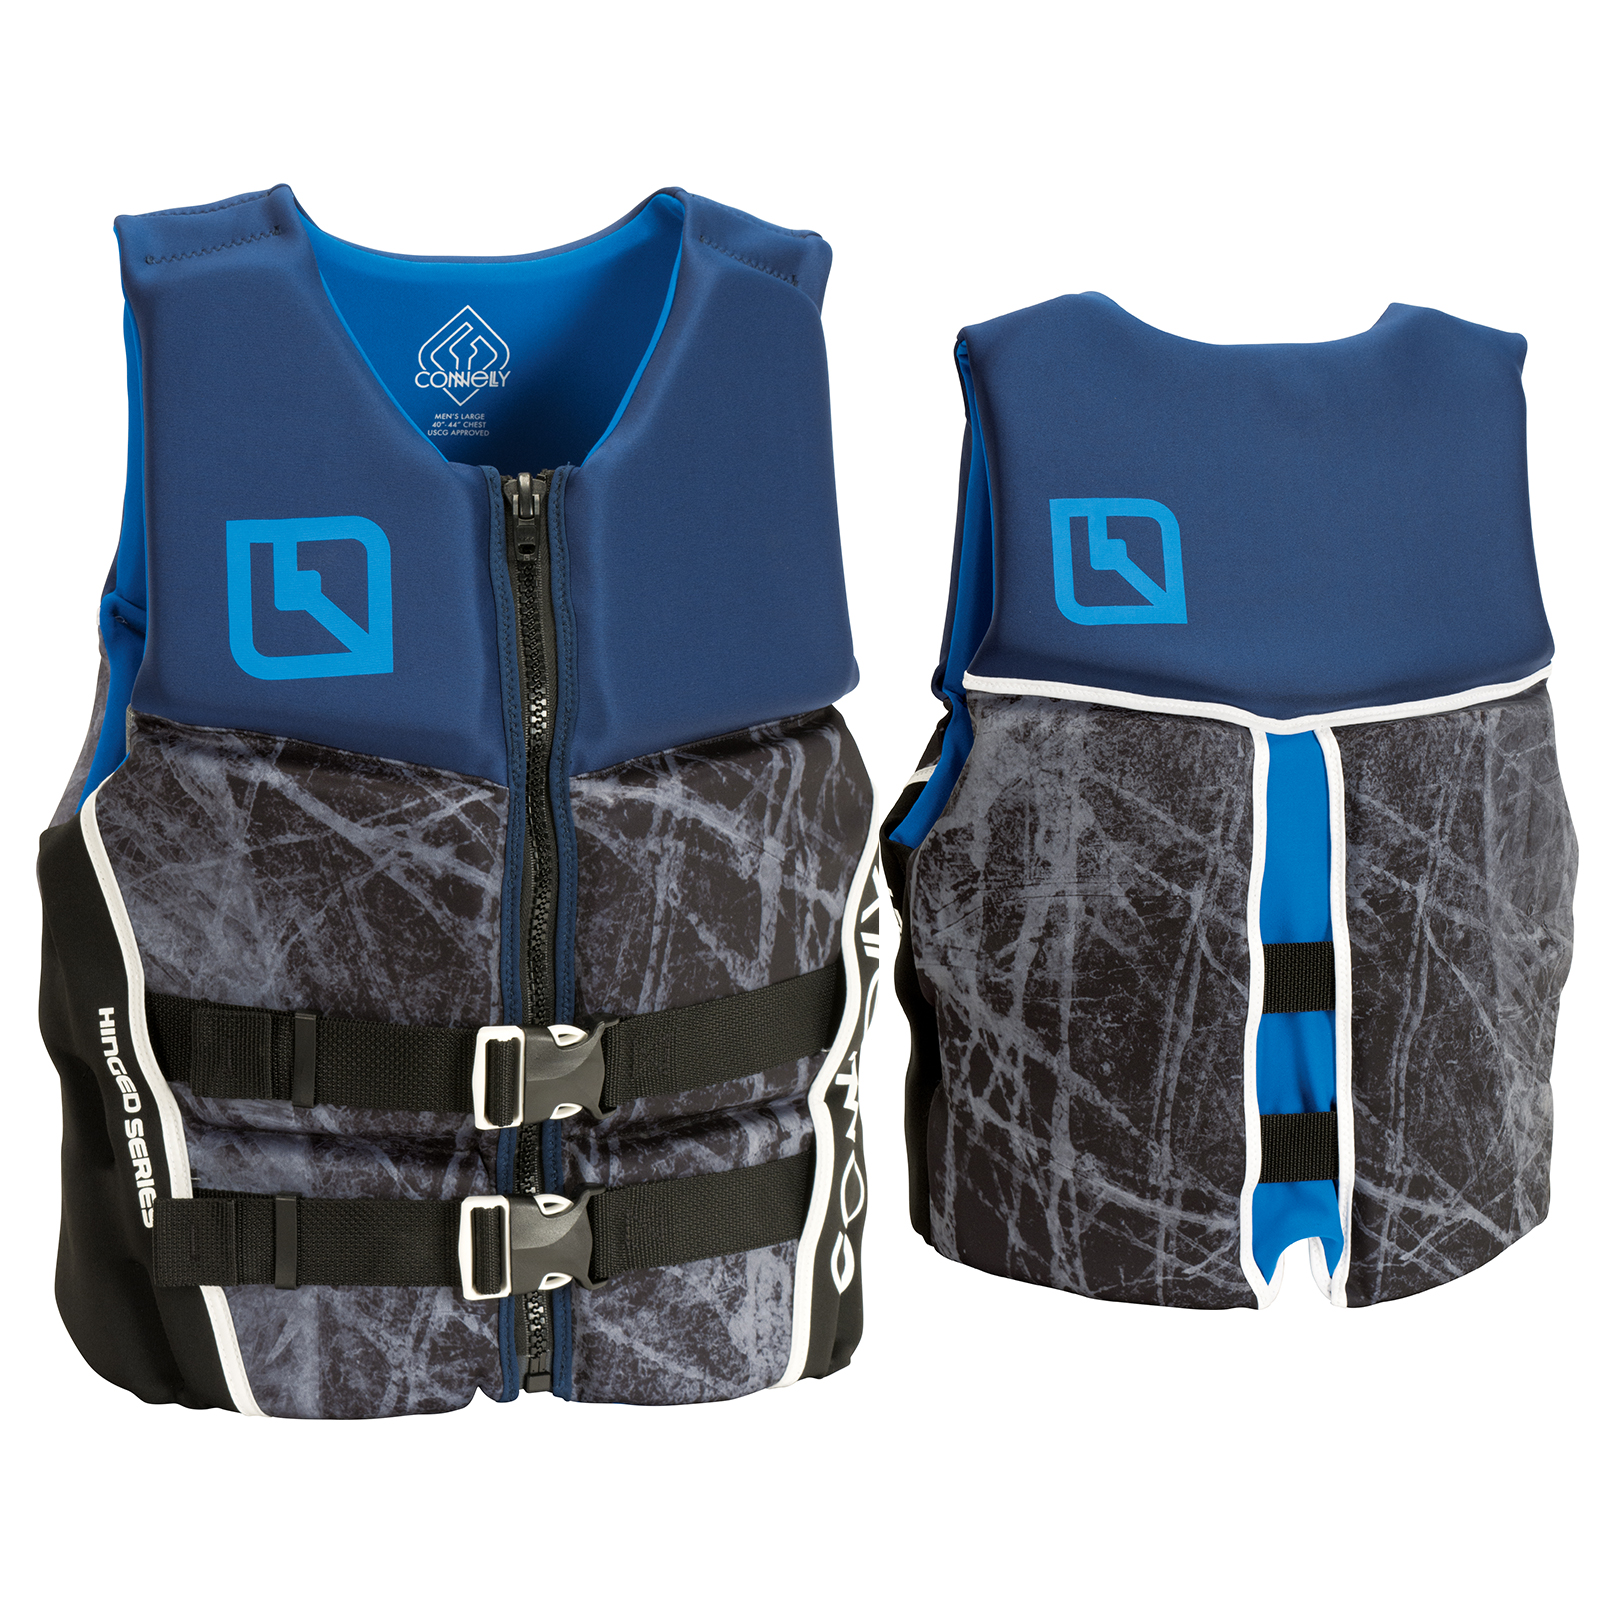 PURE NEO LIFE VEST - BLUE CONNELLY 2018